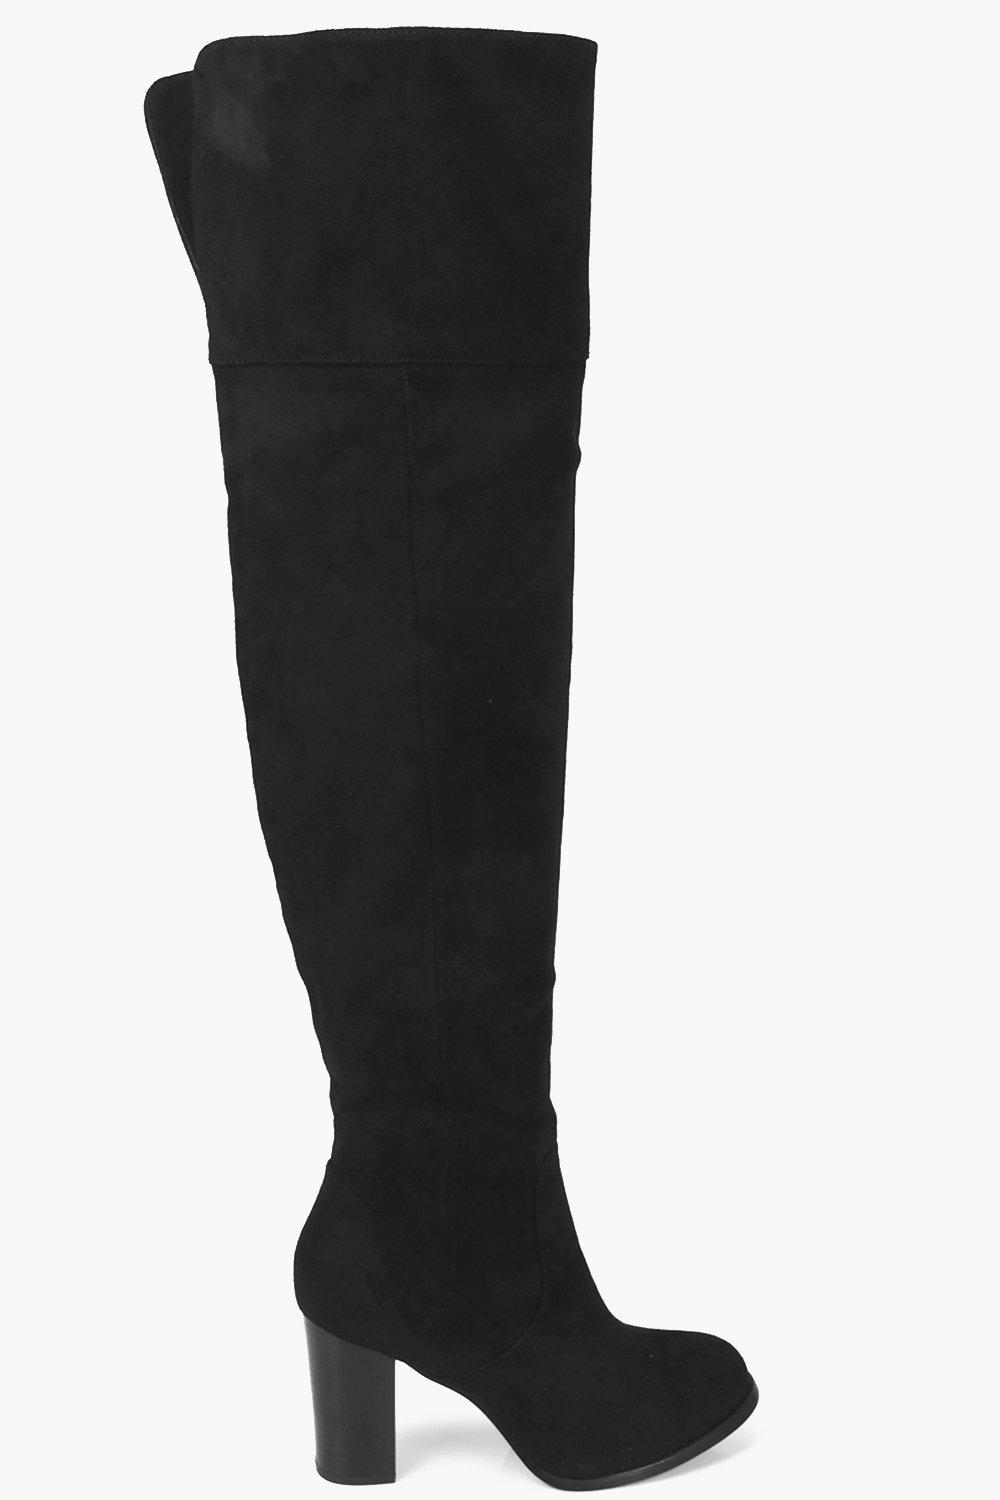 Black Thigh High Flat Boots yI7plgvR